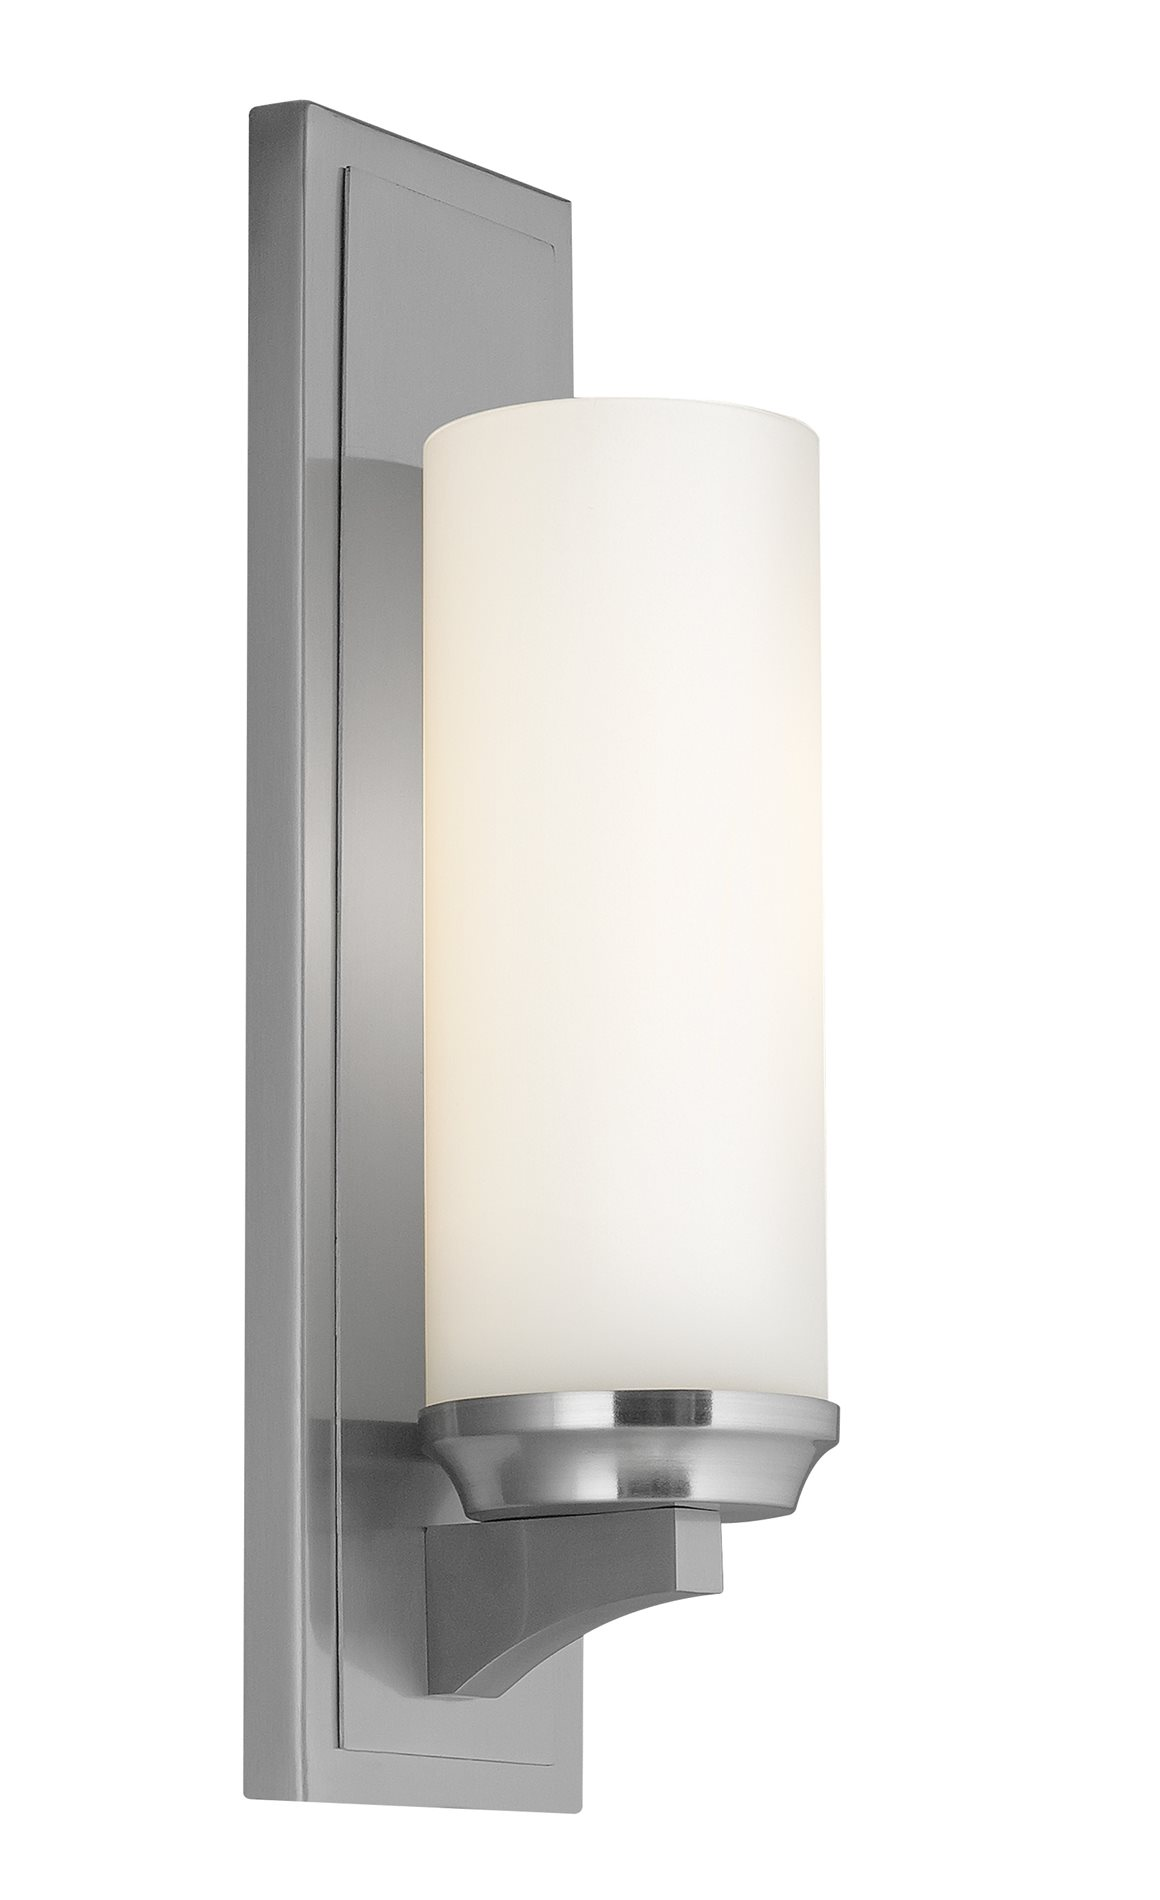 Murray Feiss WB1723BS Amalia Transitional Wall Sconce MRF-WB1723BS